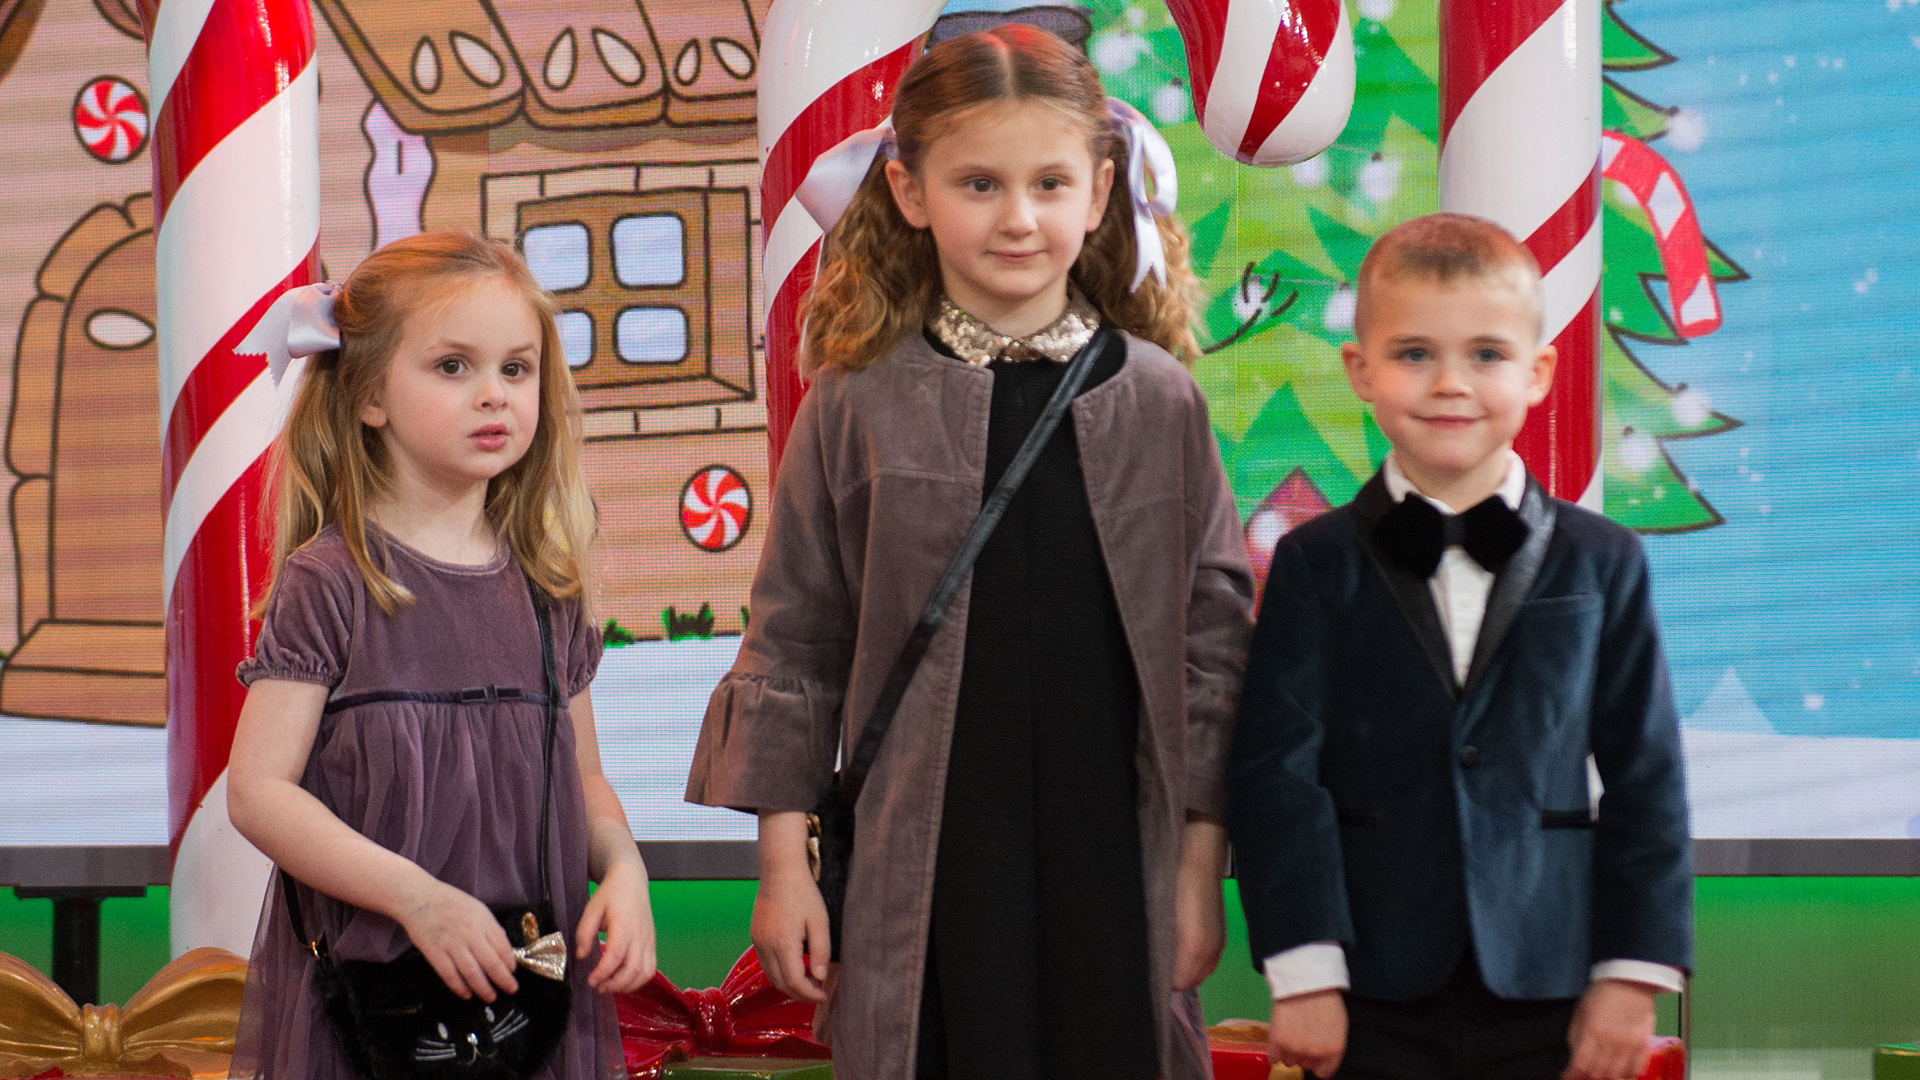 Christmas dresses and holiday party outfits that kids will love